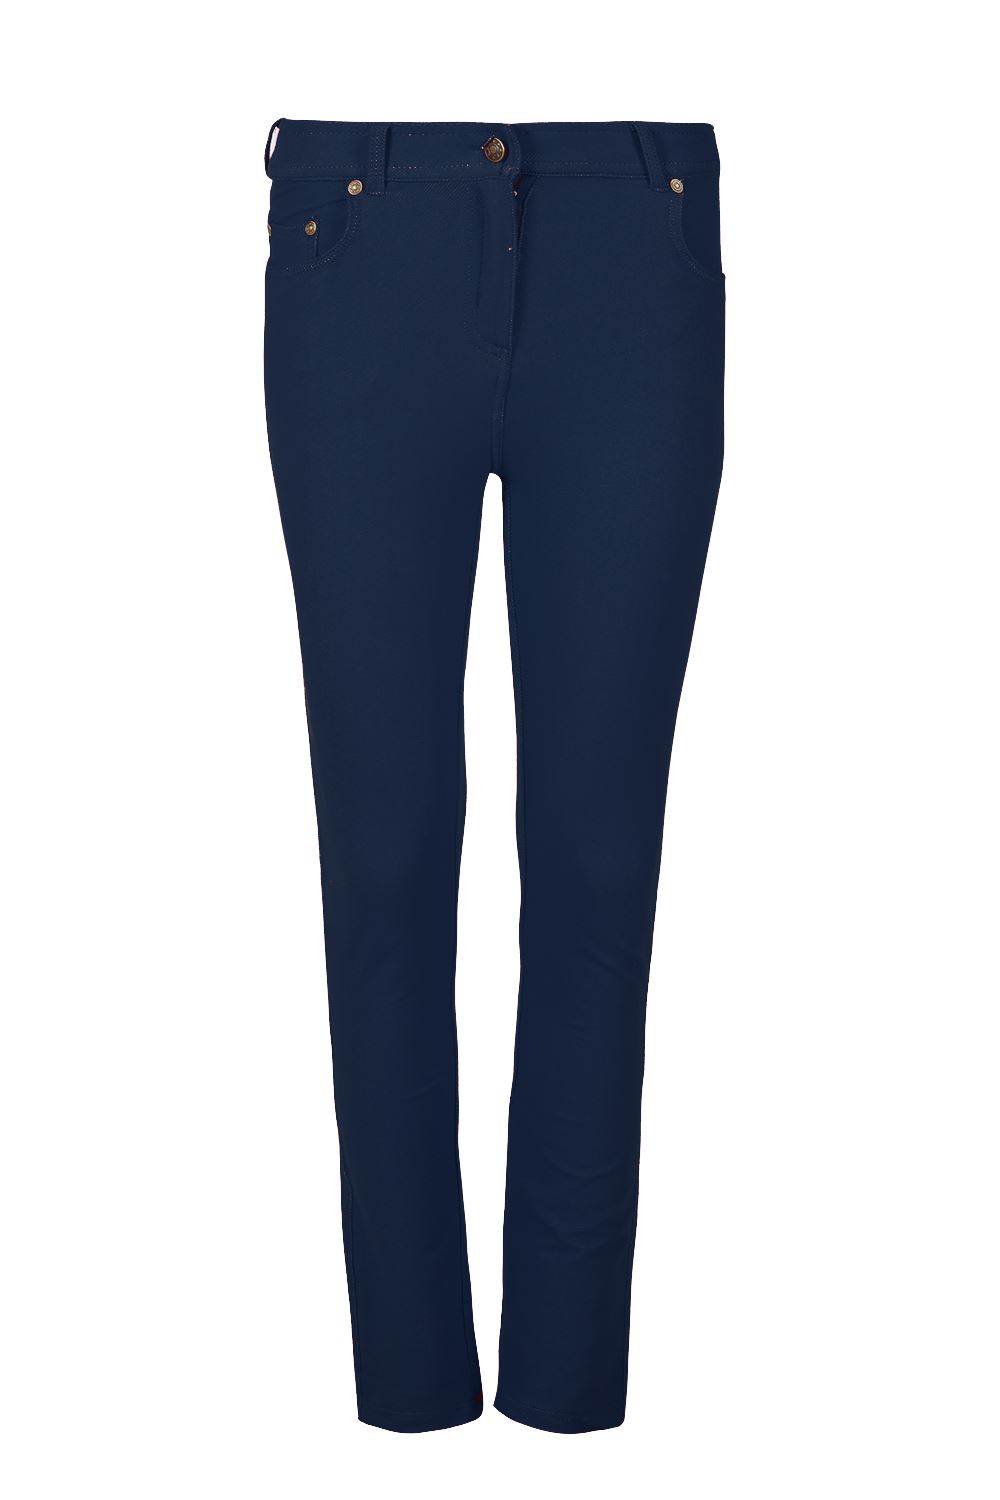 Plus Size Jeggings Get all of the sleek, timeless style of close-fitting denim jeans and all the stretchy comfort of leggings with a pair of plus size jeggings. Jeggings, a stylish hybrid of jeans and leggings, are a super-versatile addition to any wardrobe.